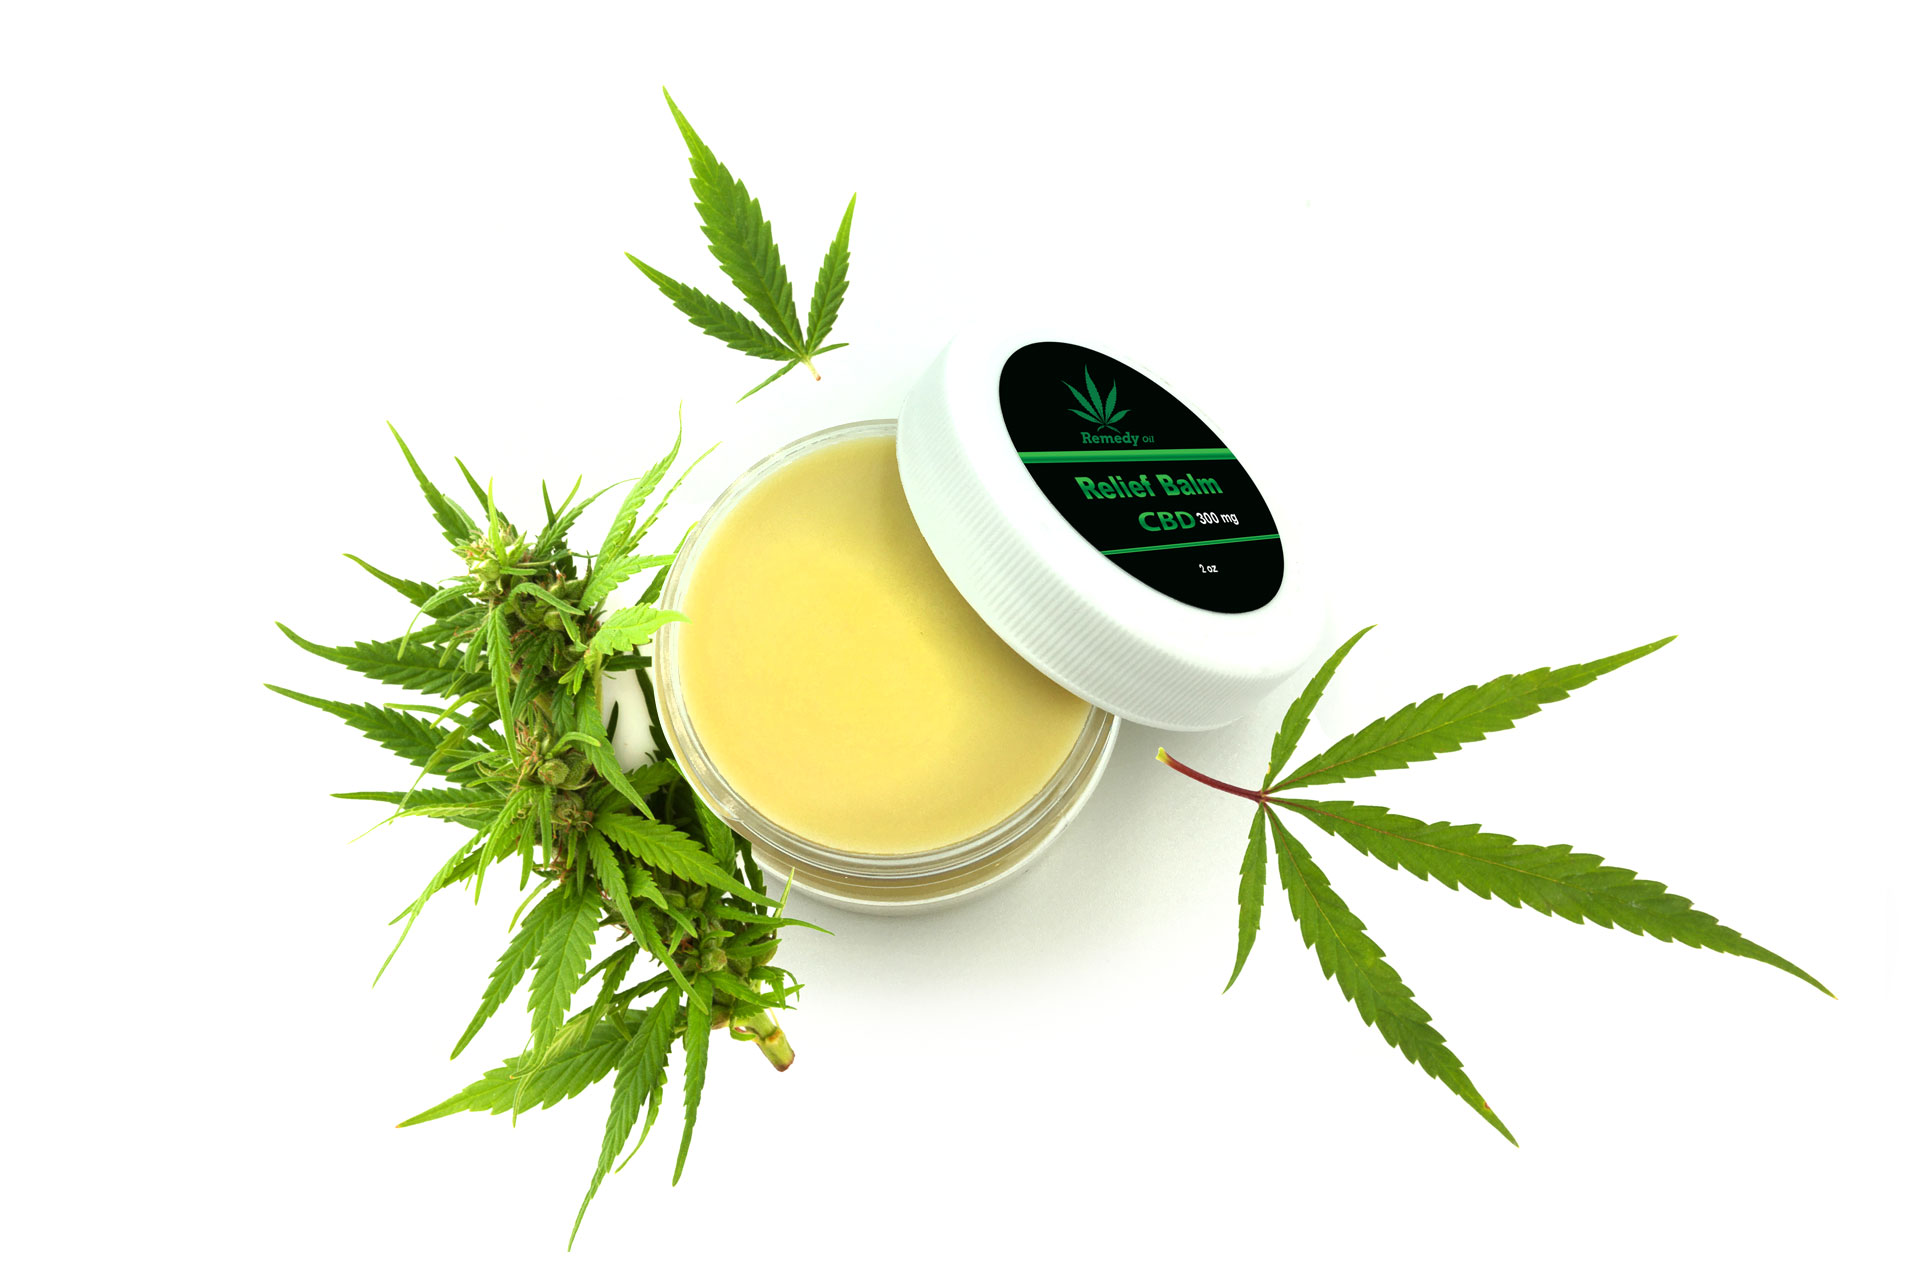 Remedy Relief Balm Slide